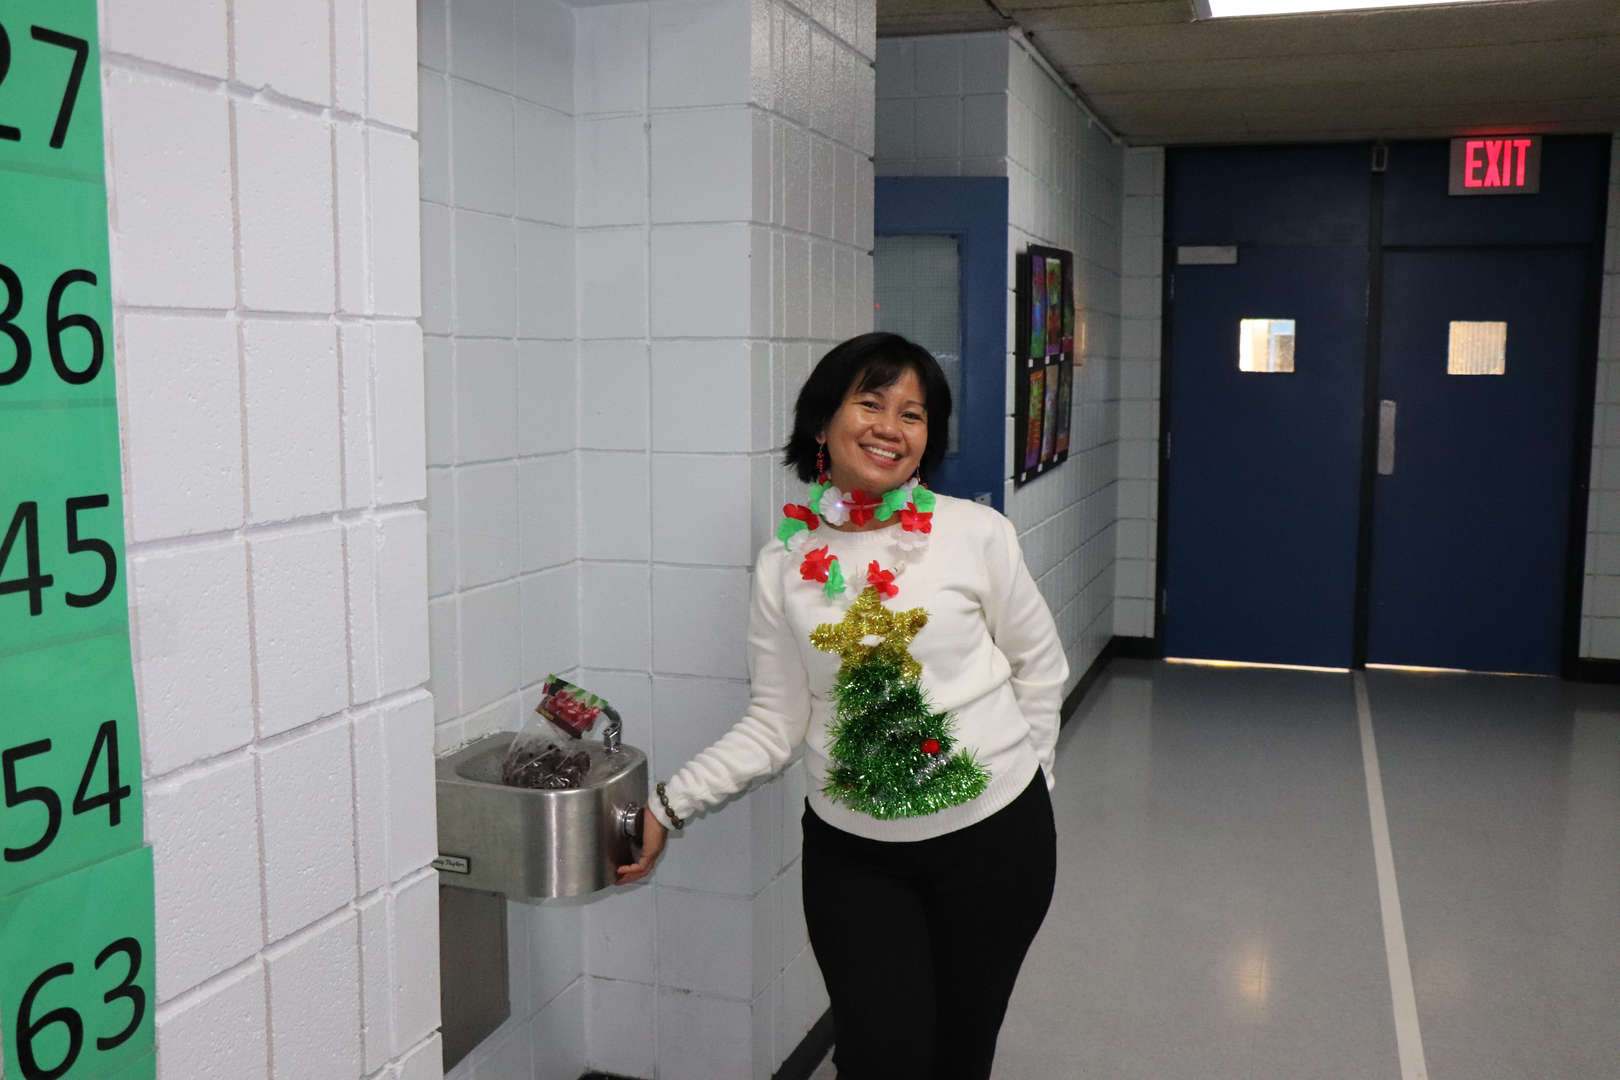 One of PS 152's paras in her ugly Christmas sweater.